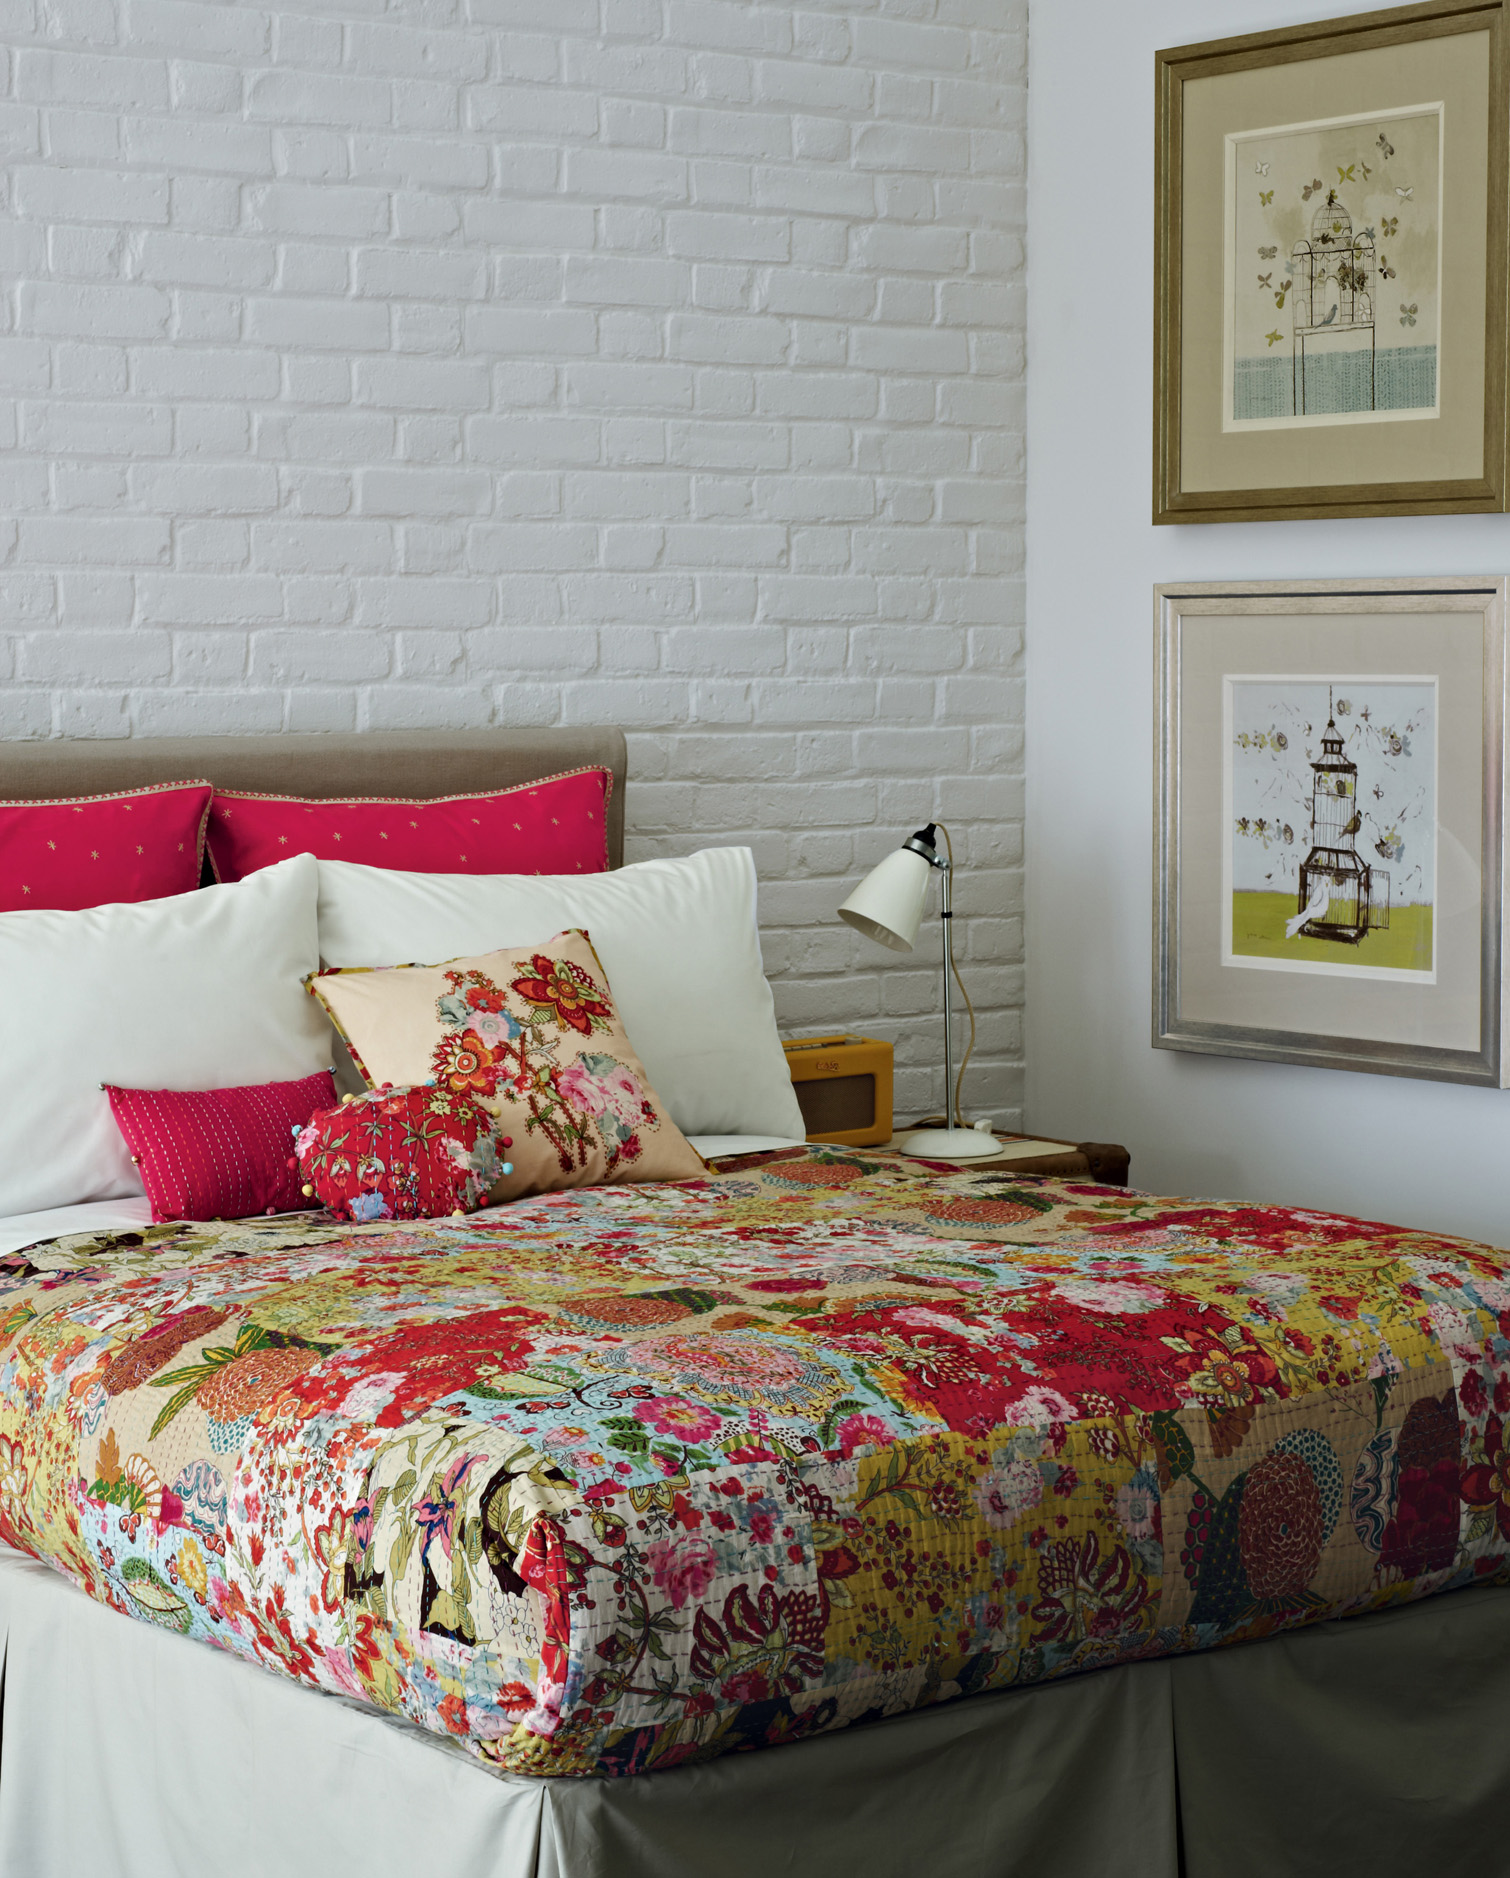 Ethnic Moroccan Bedspread Delivers More Alive And Cheerful Nuance: Classic Bedroom Design With White Brick Wall Moroccan Bedspread Style